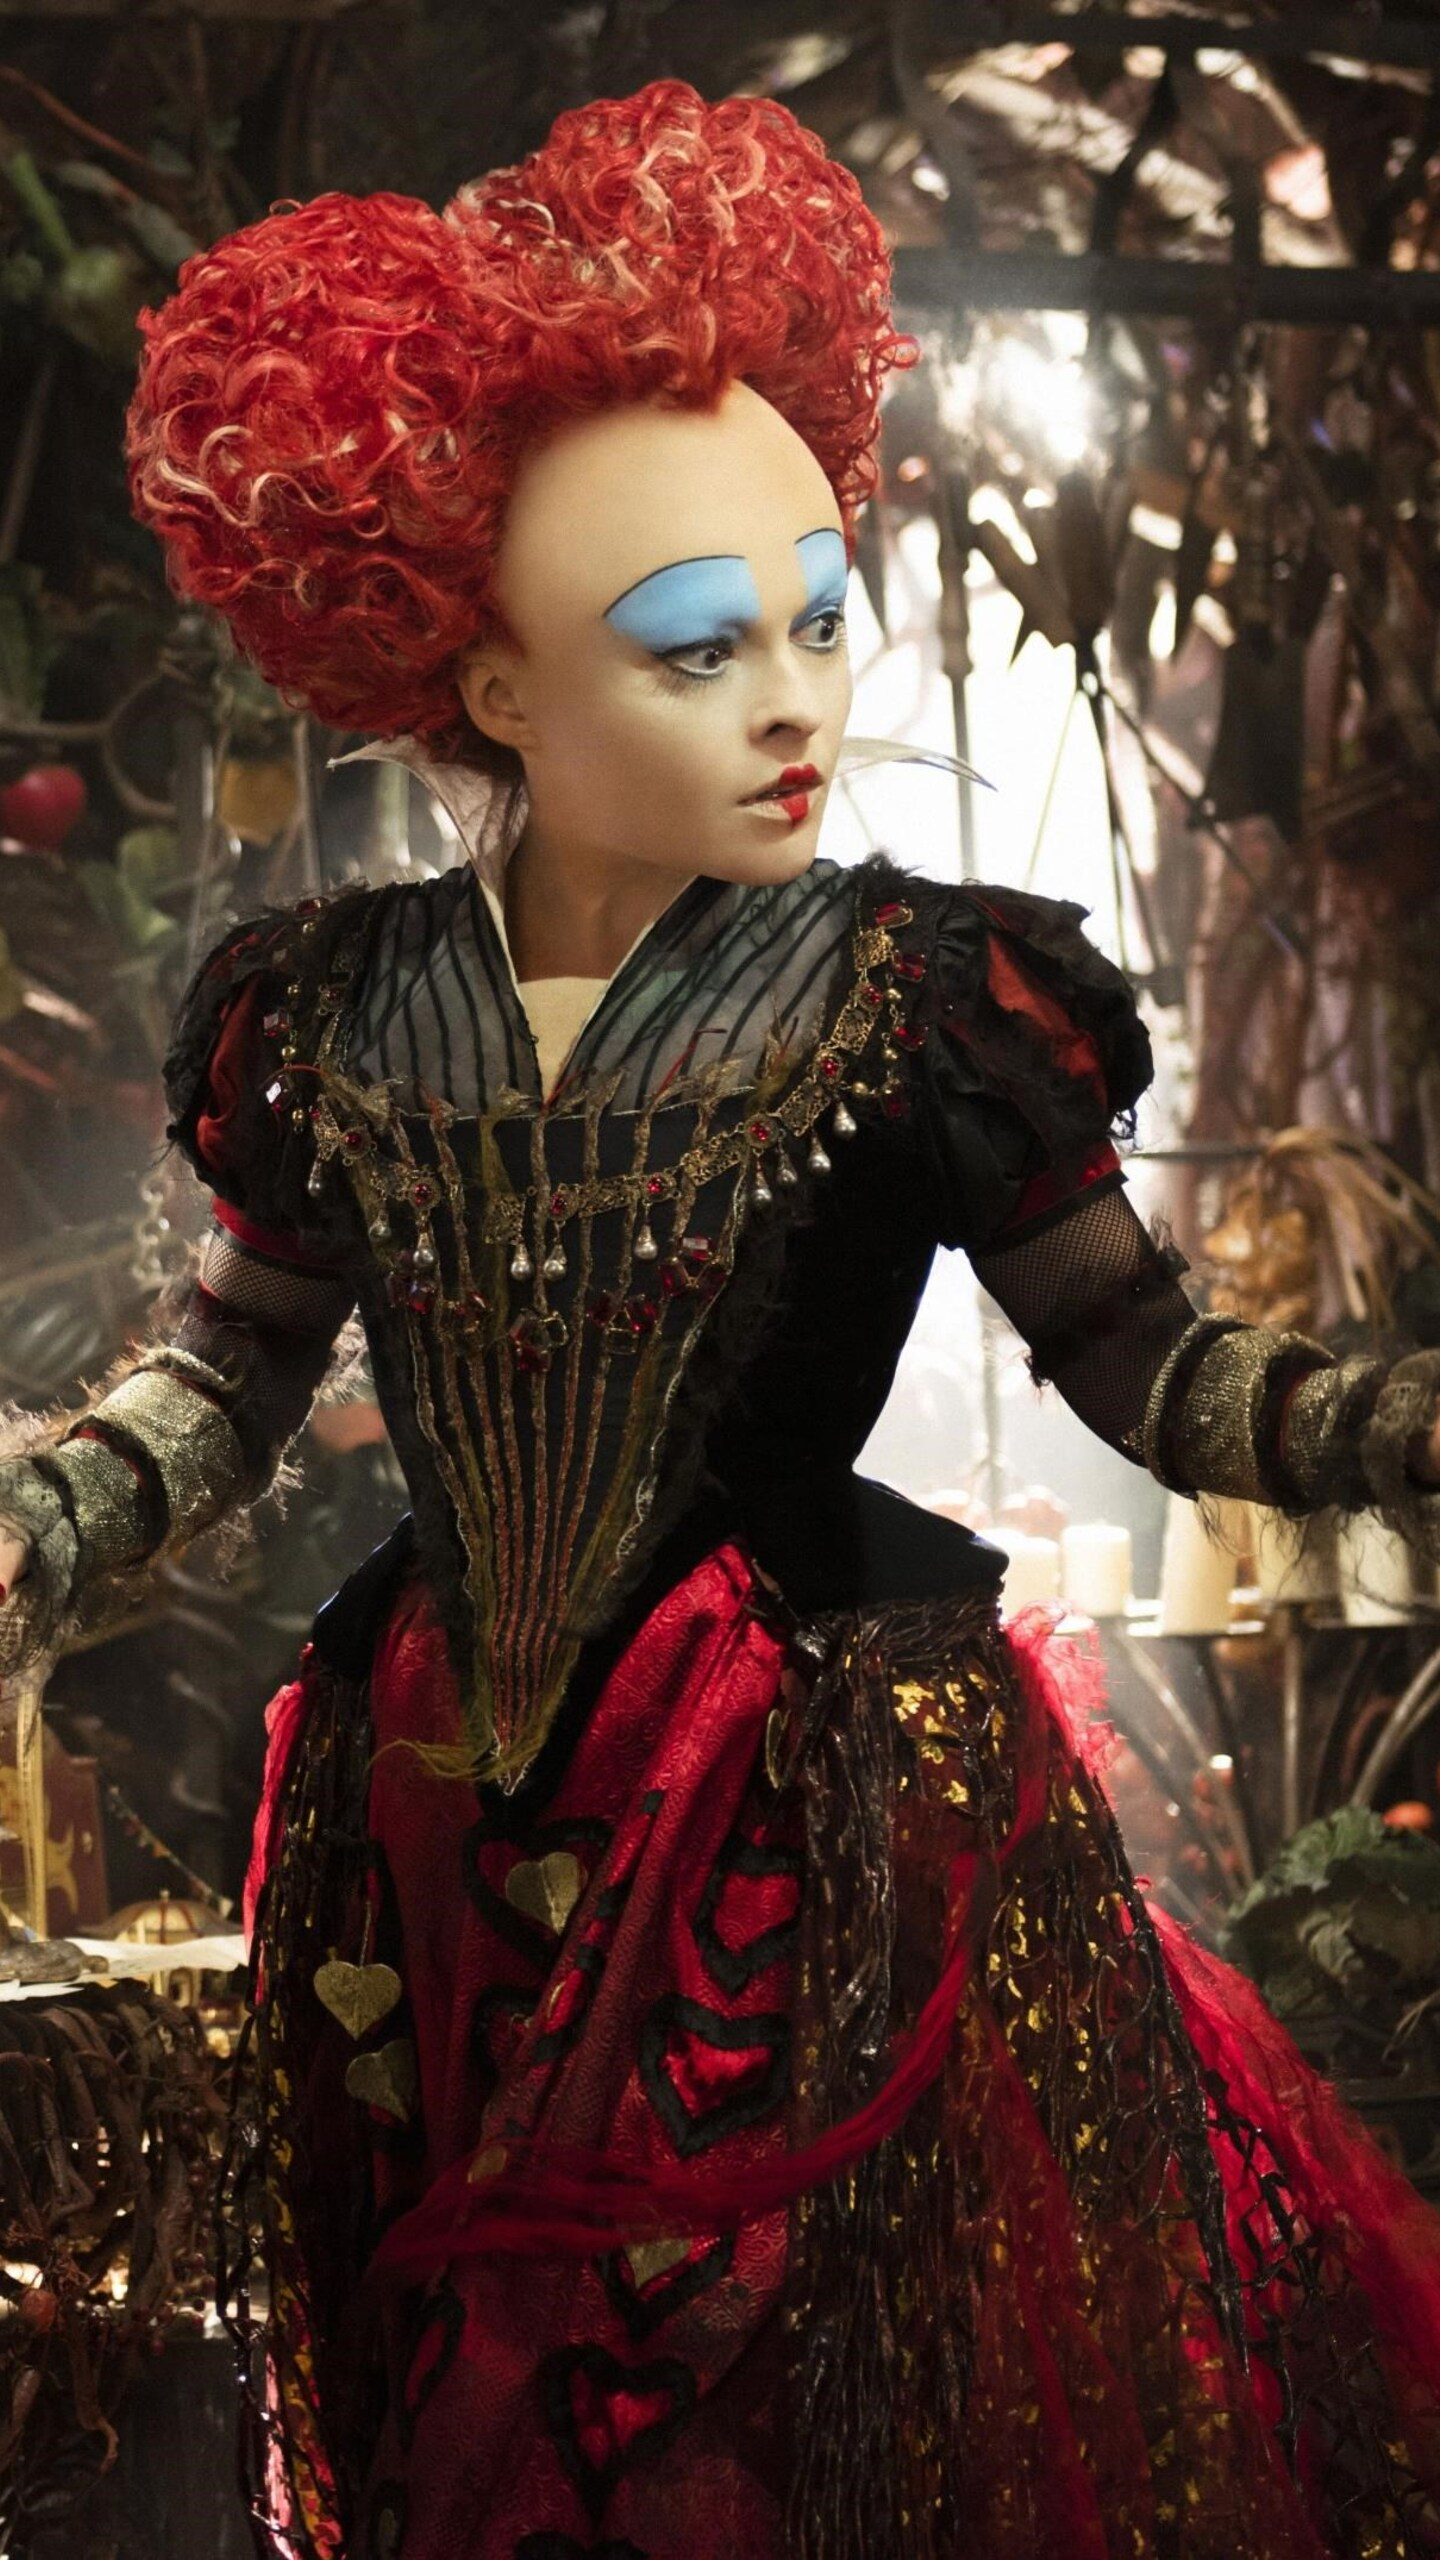 helena-bonham-carter-alice-through-the-looking-glass-img.jpg